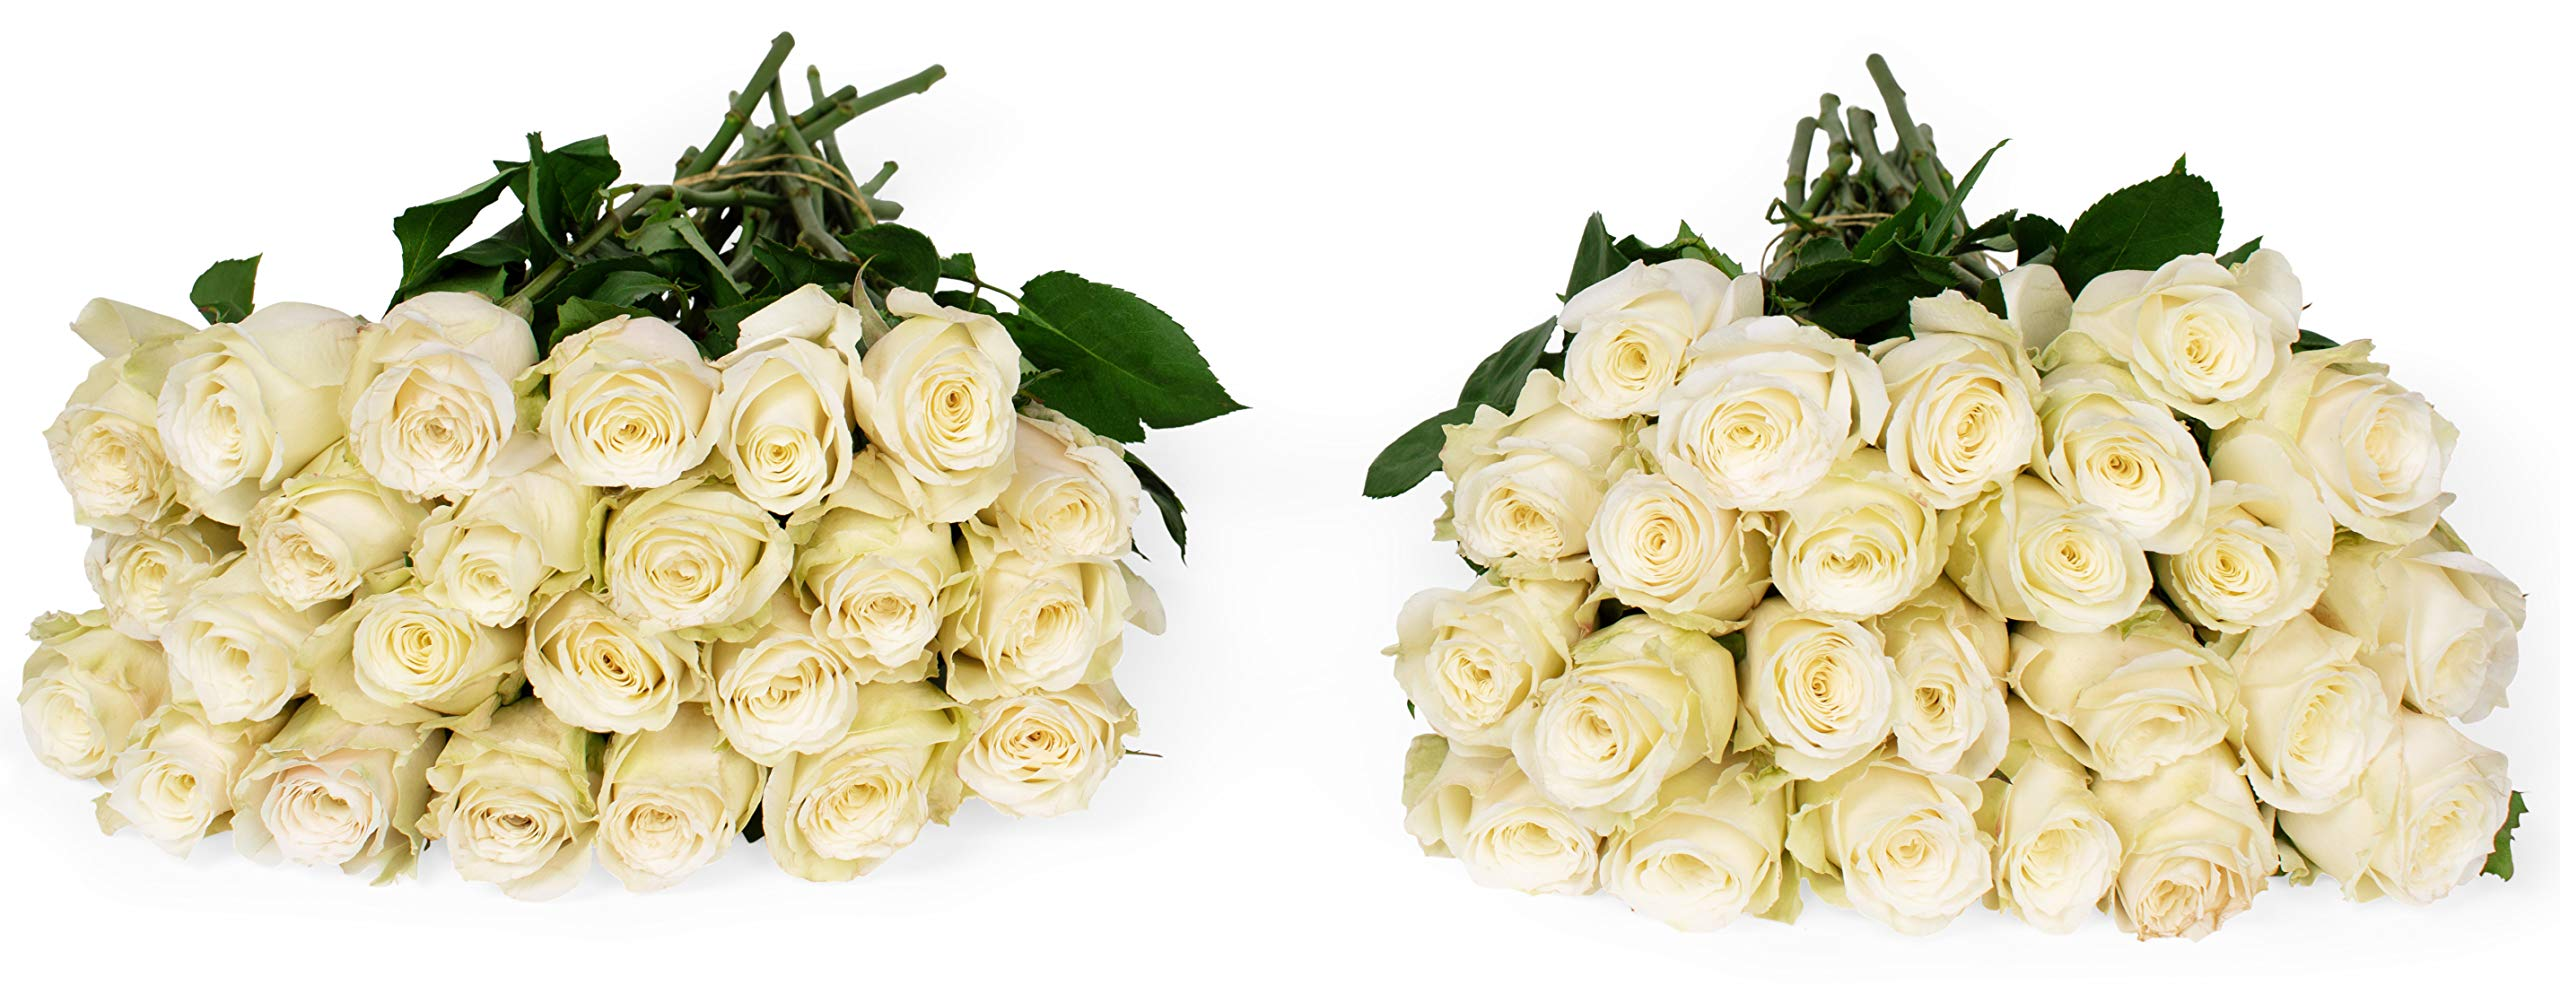 Benchmark Bouquets 50 White Roses Farm Direct (Fresh Cut Flowers) by Benchmark Bouquets (Image #1)